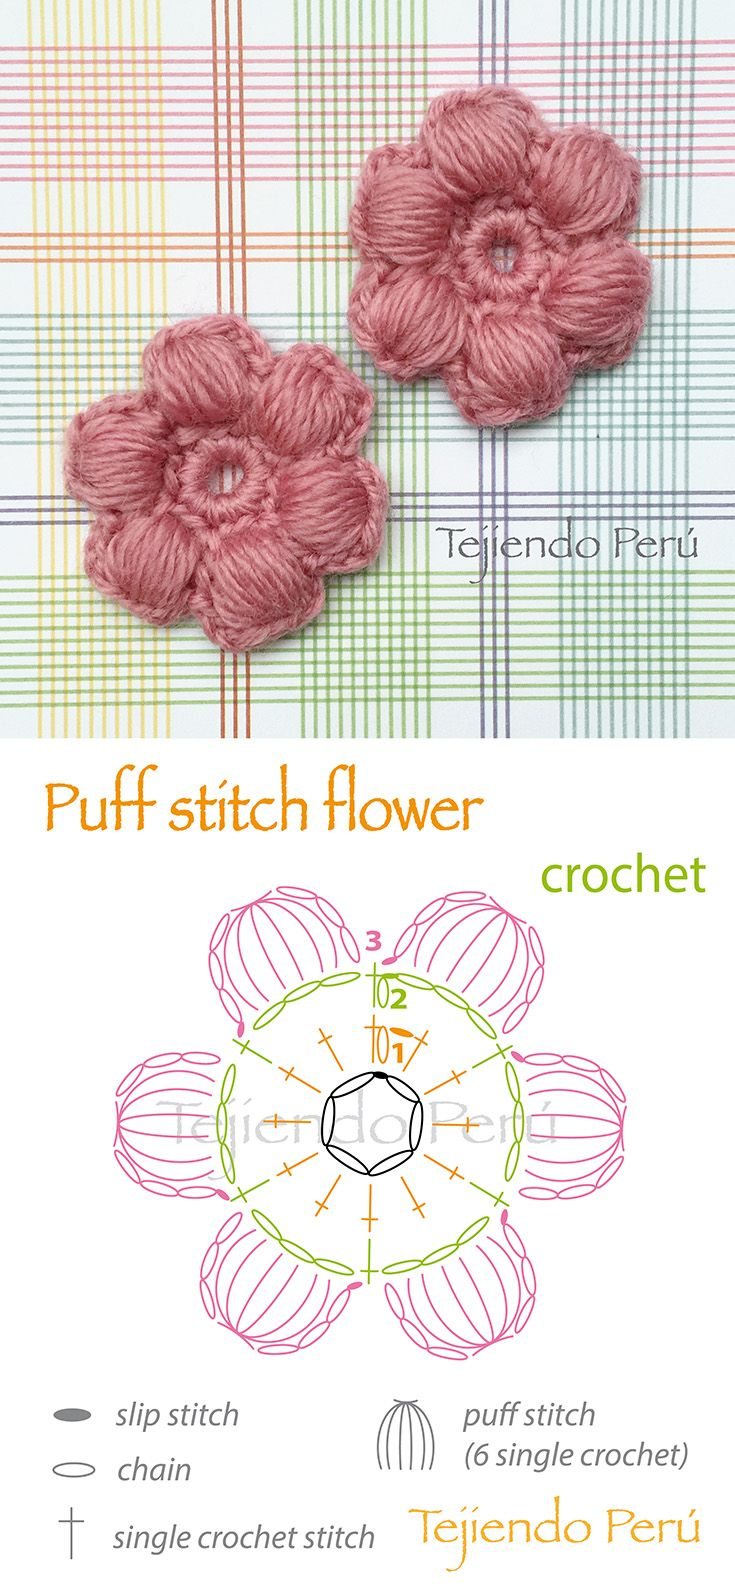 Crochet: puff stitch flower diagram!                                                                                                                                                      Más